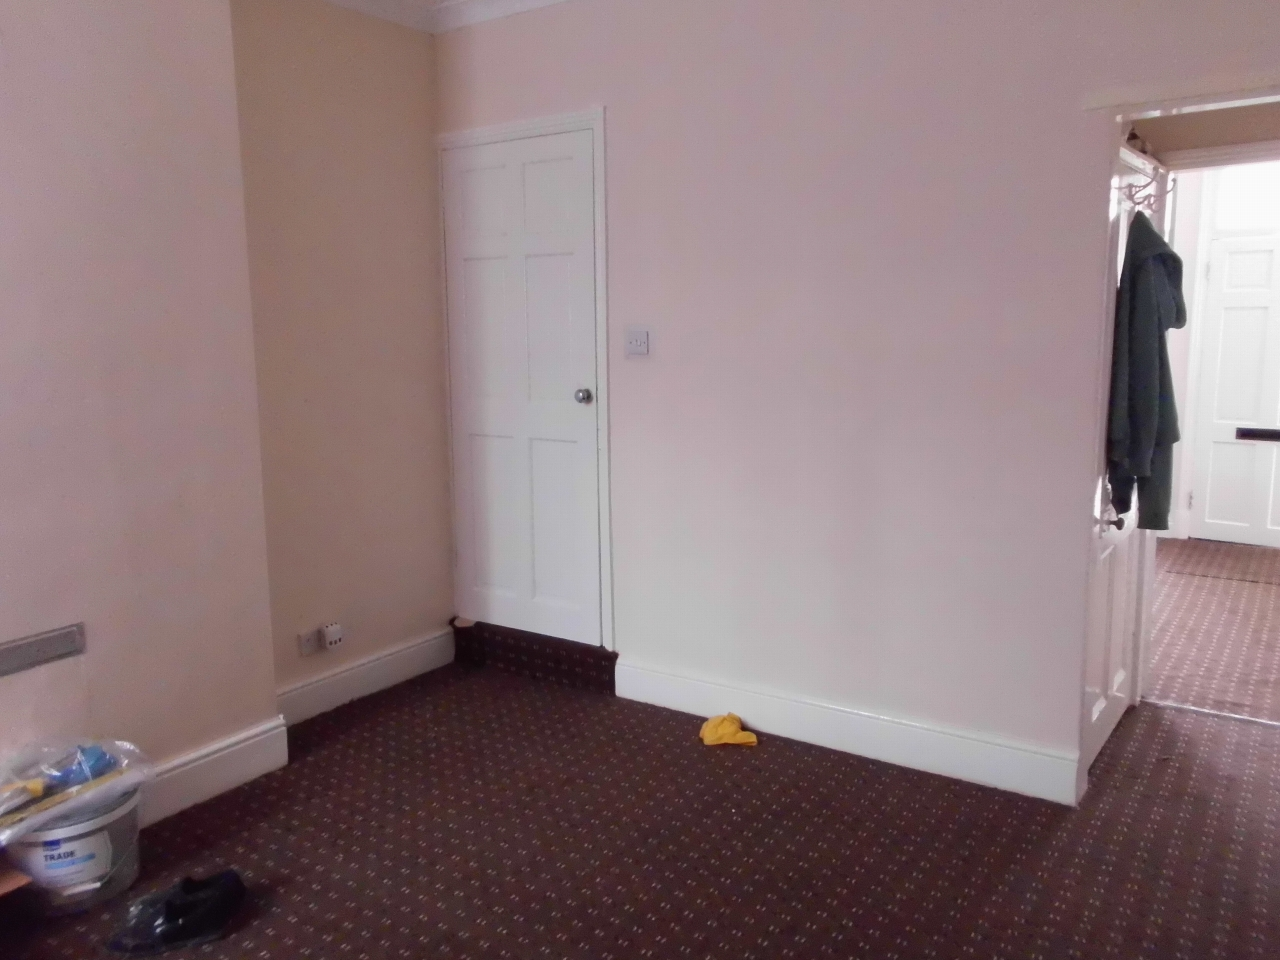 2 bedroom mid terraced house For Sale in Leicester - Photograph 4.